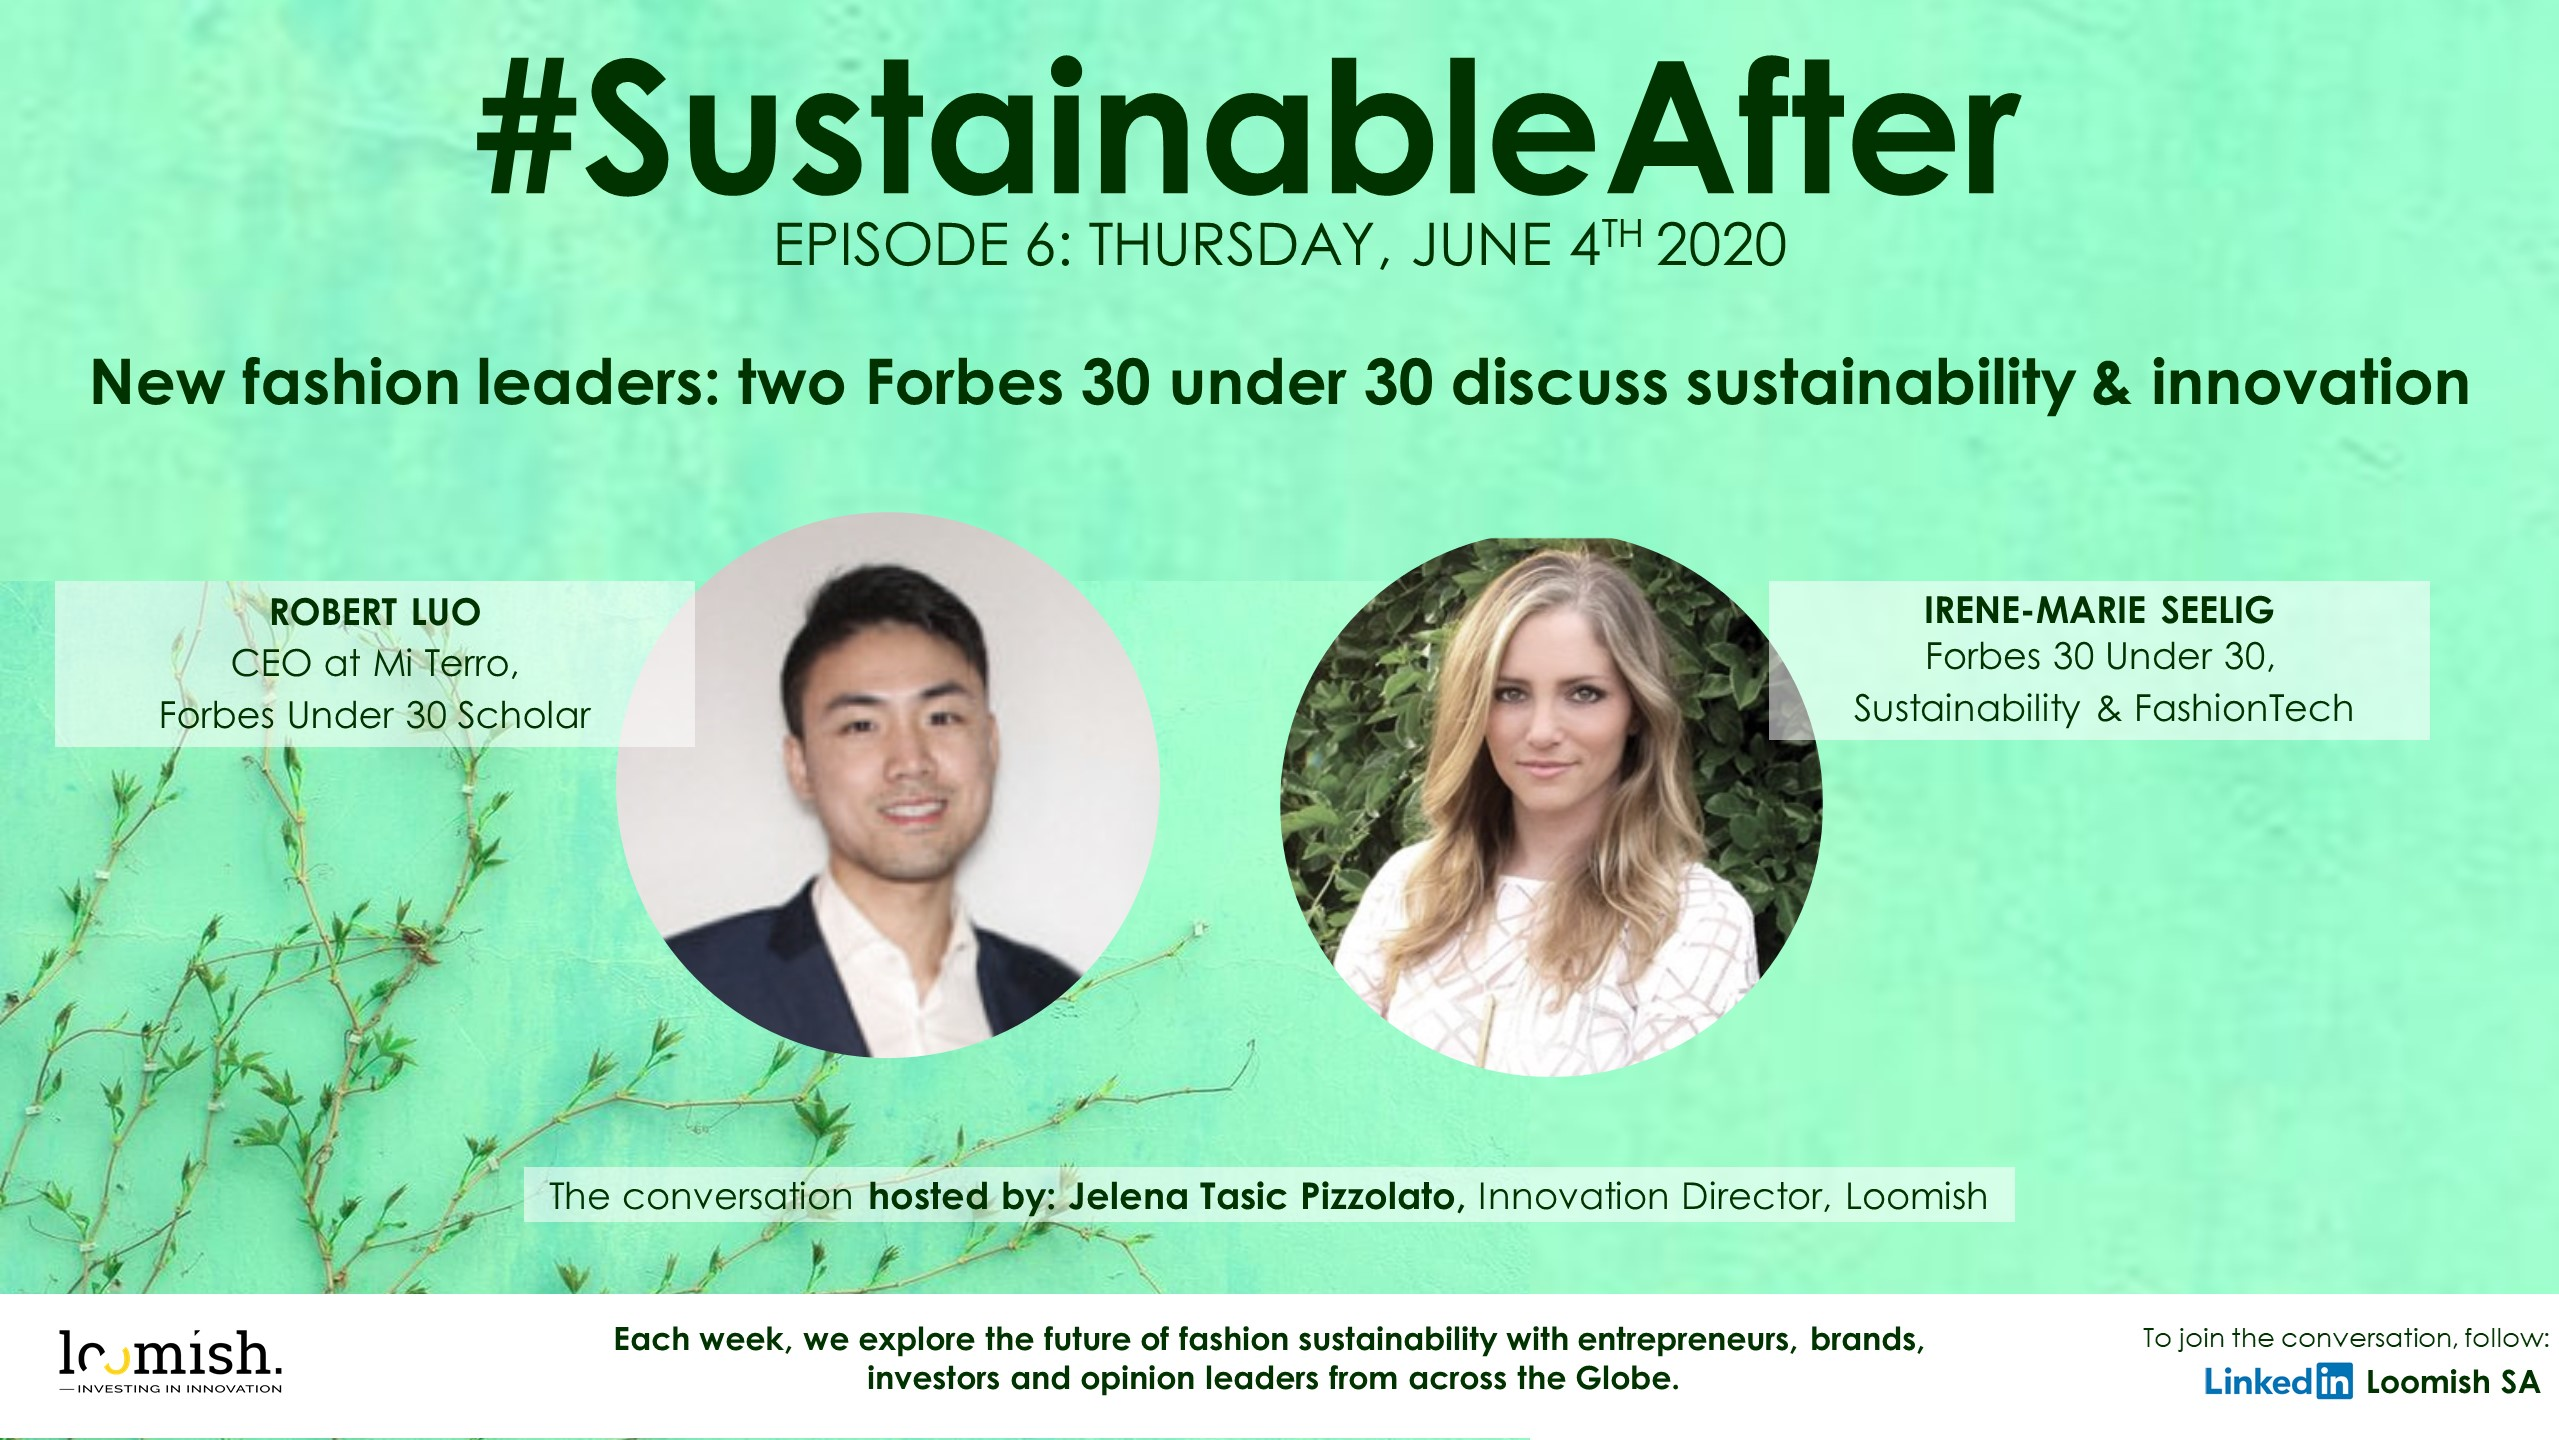 sustainableafter episode 6